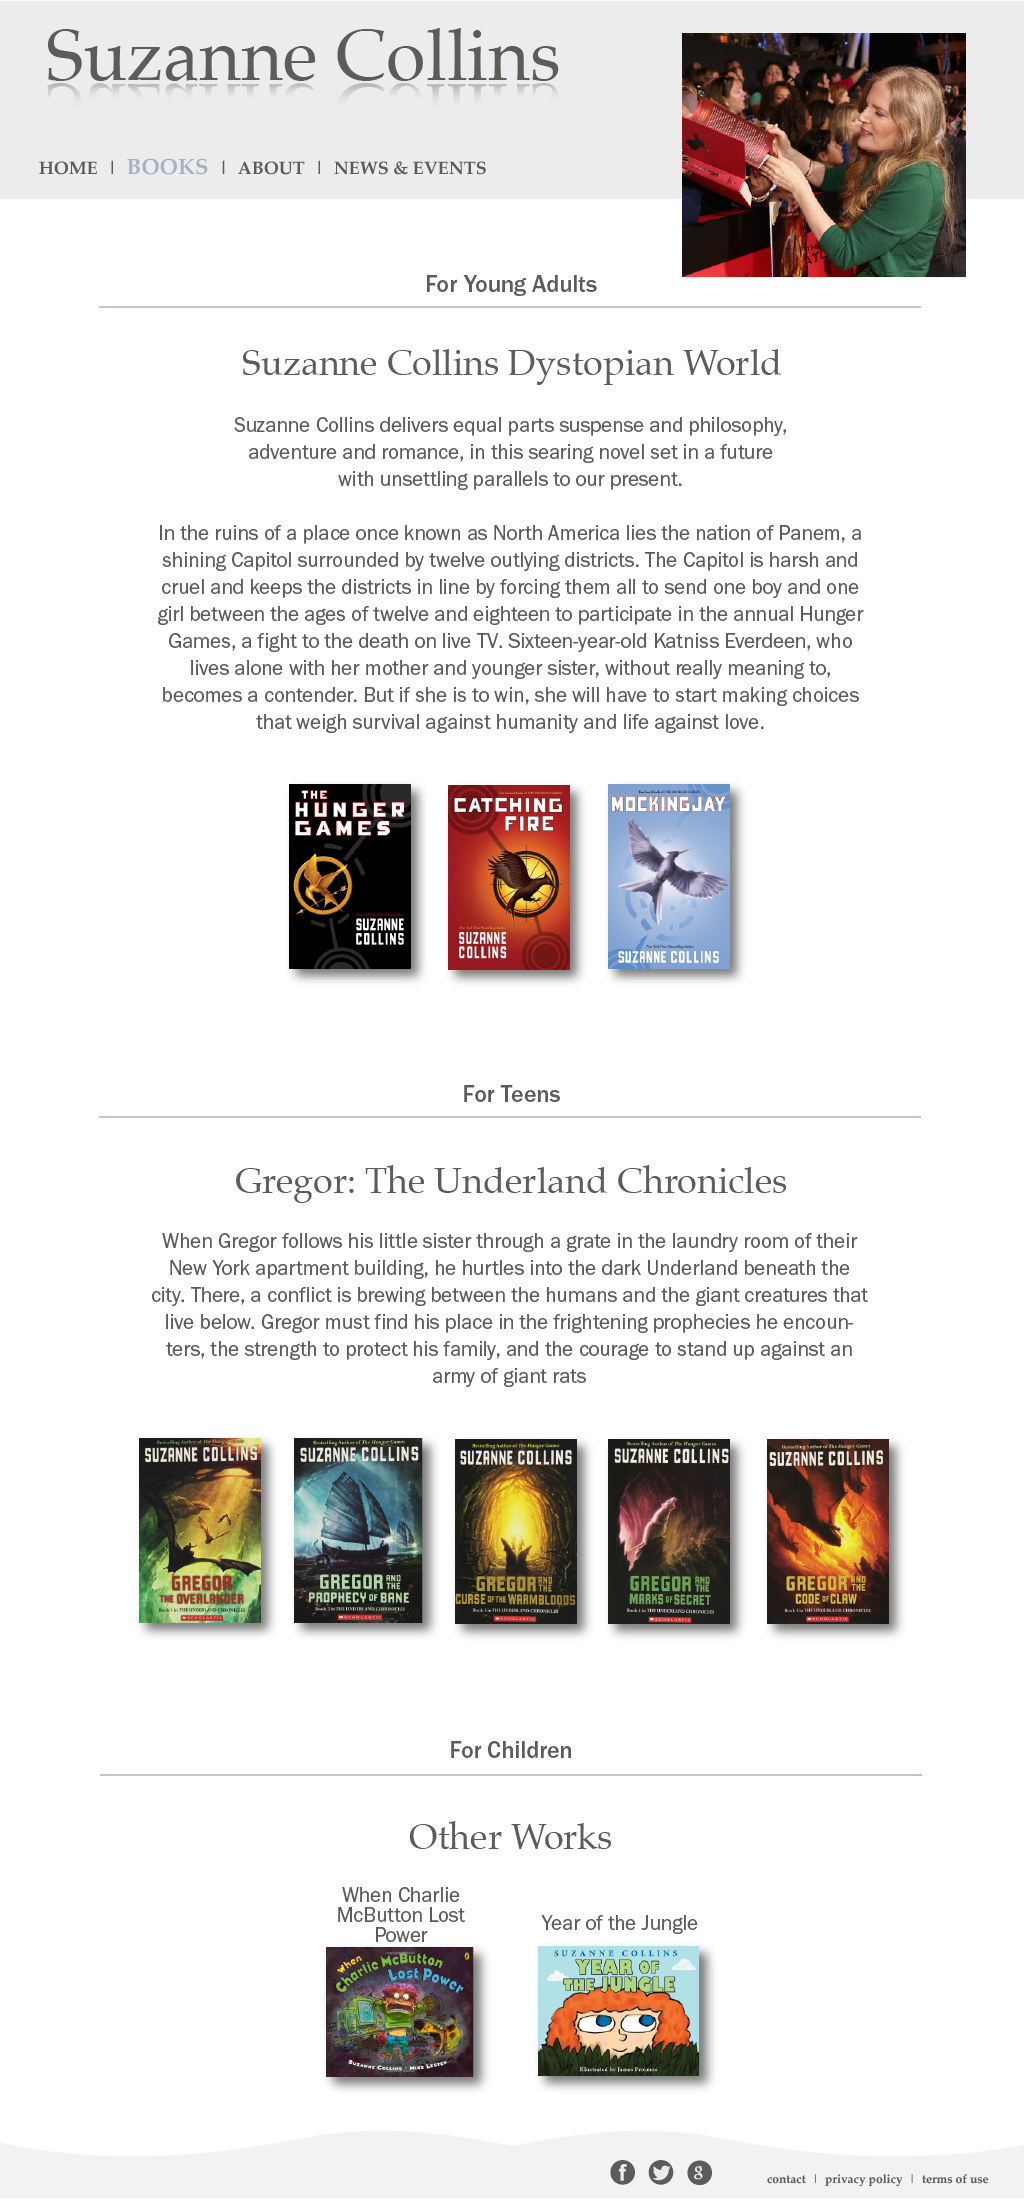 Suzanne Collins Website Redesign on Behance